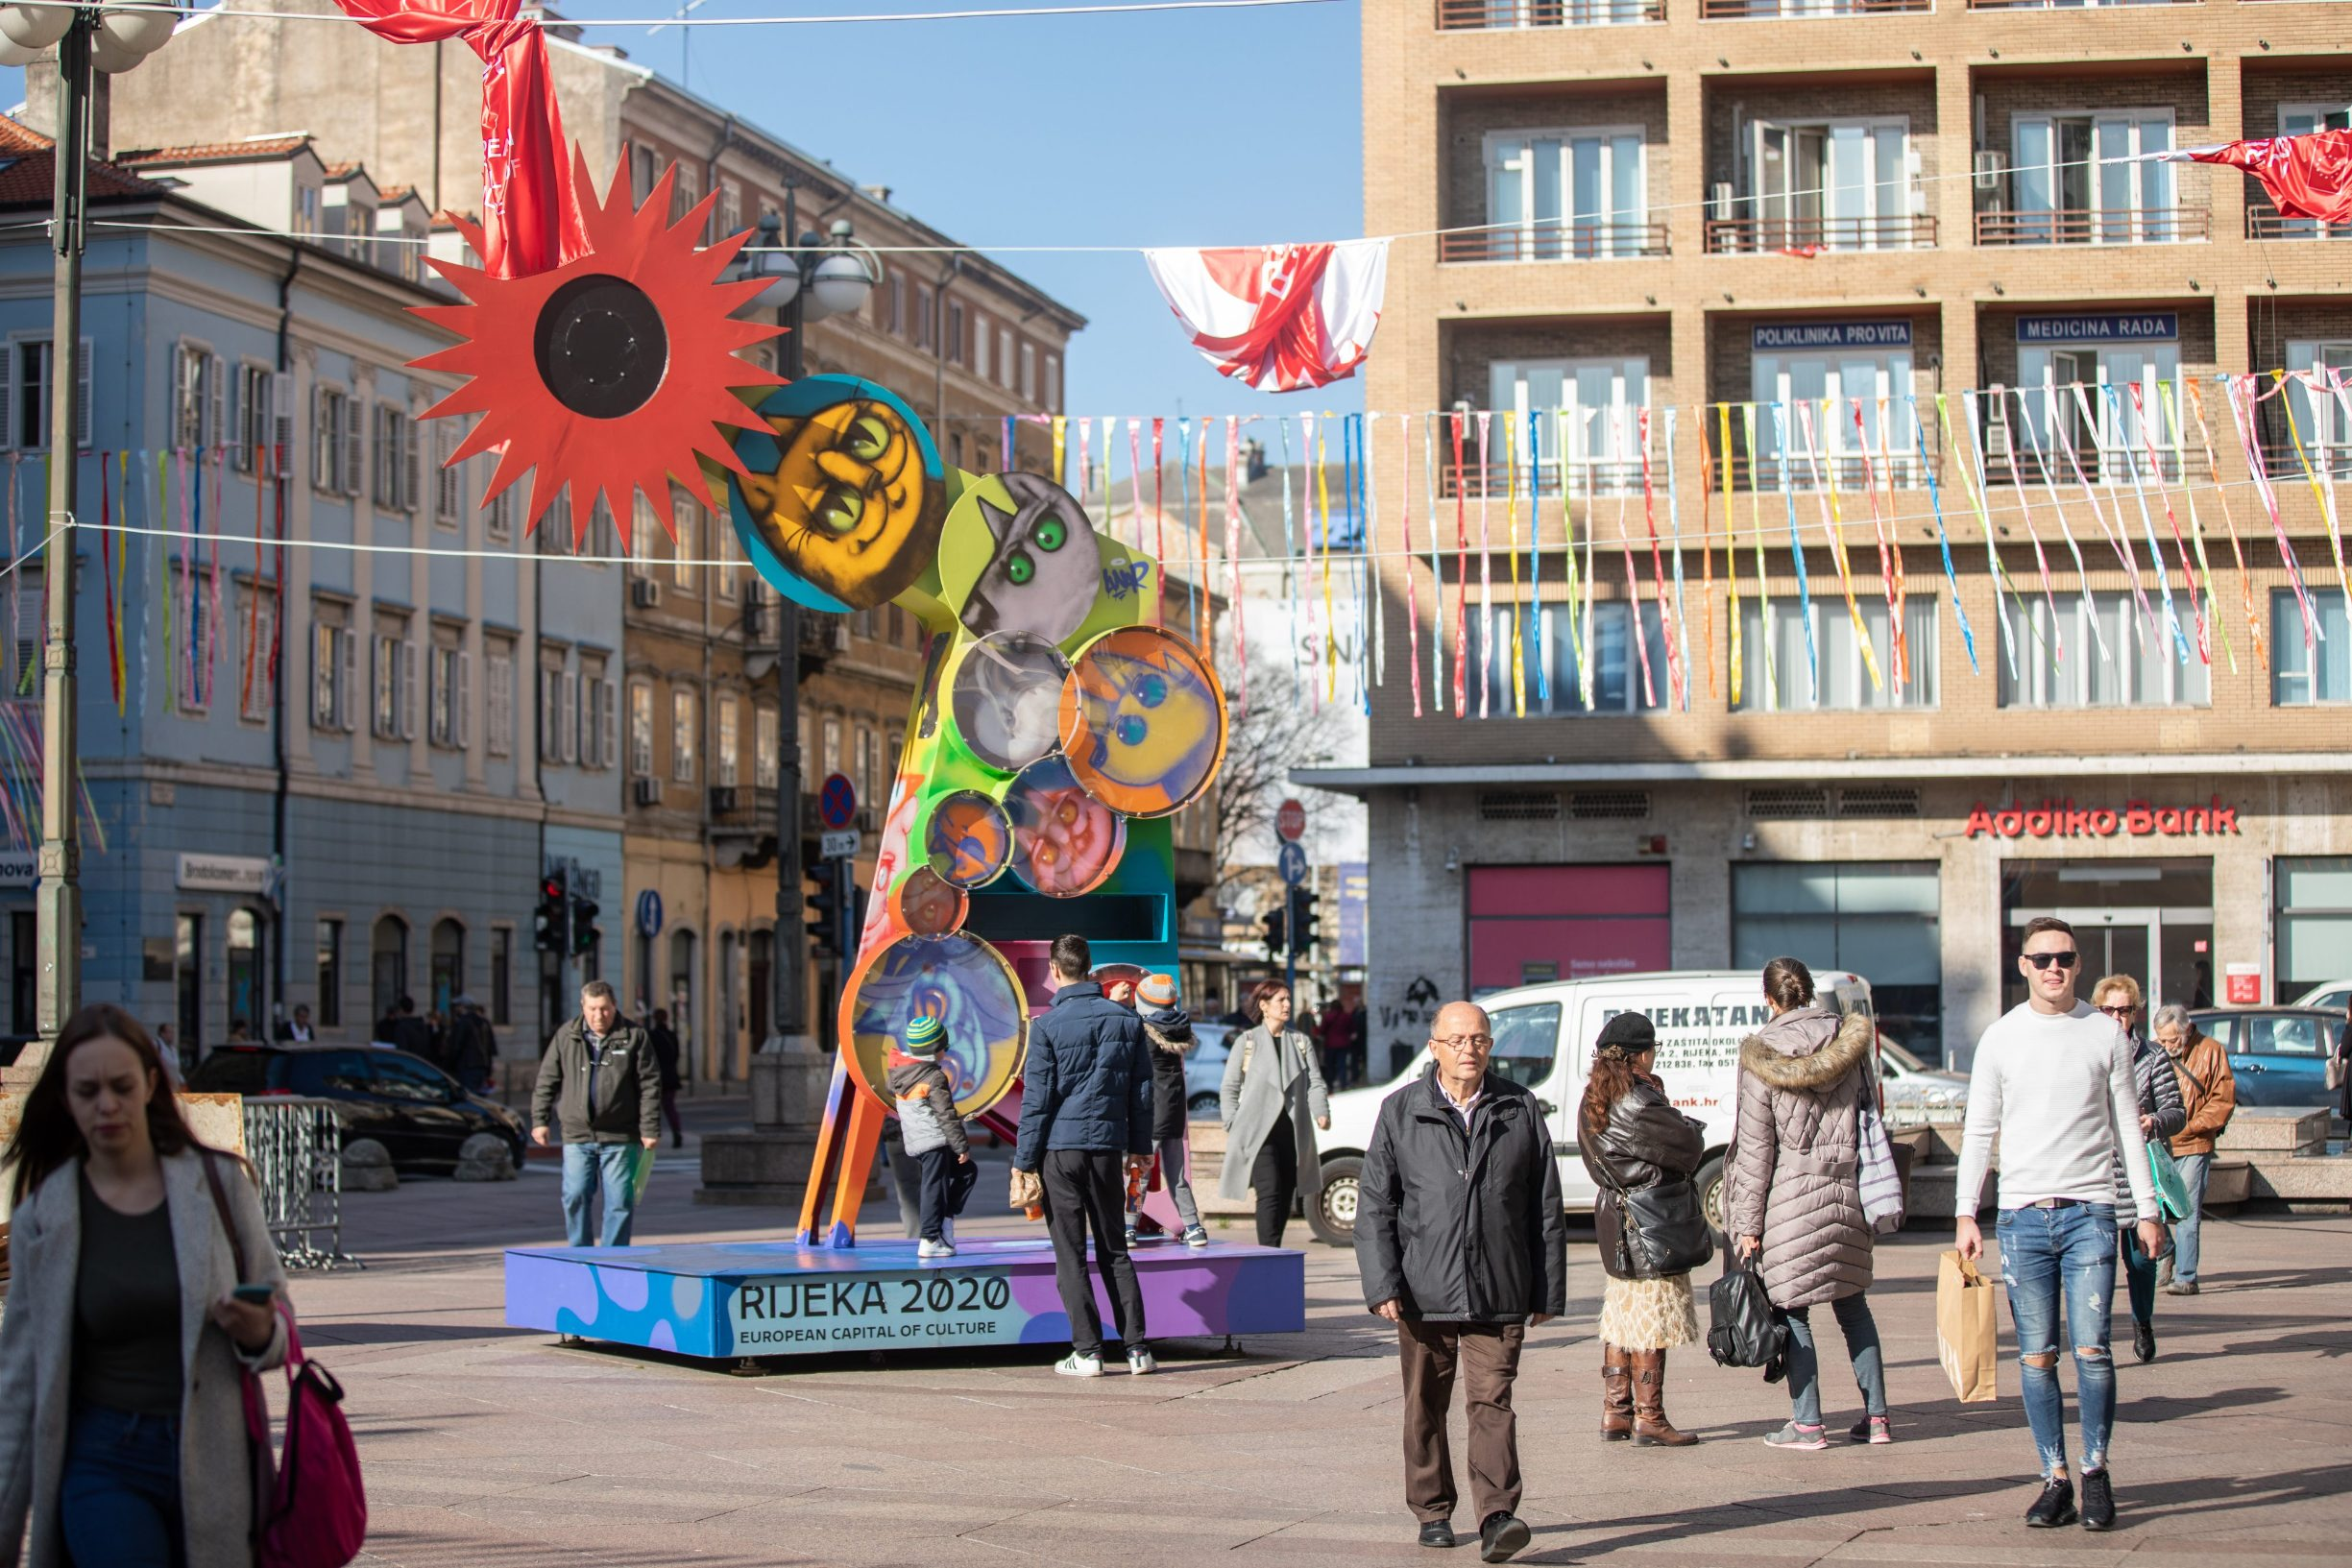 Rijeka 2020 has decided, in agreement with its partners, to cancel all events scheduled until April 14